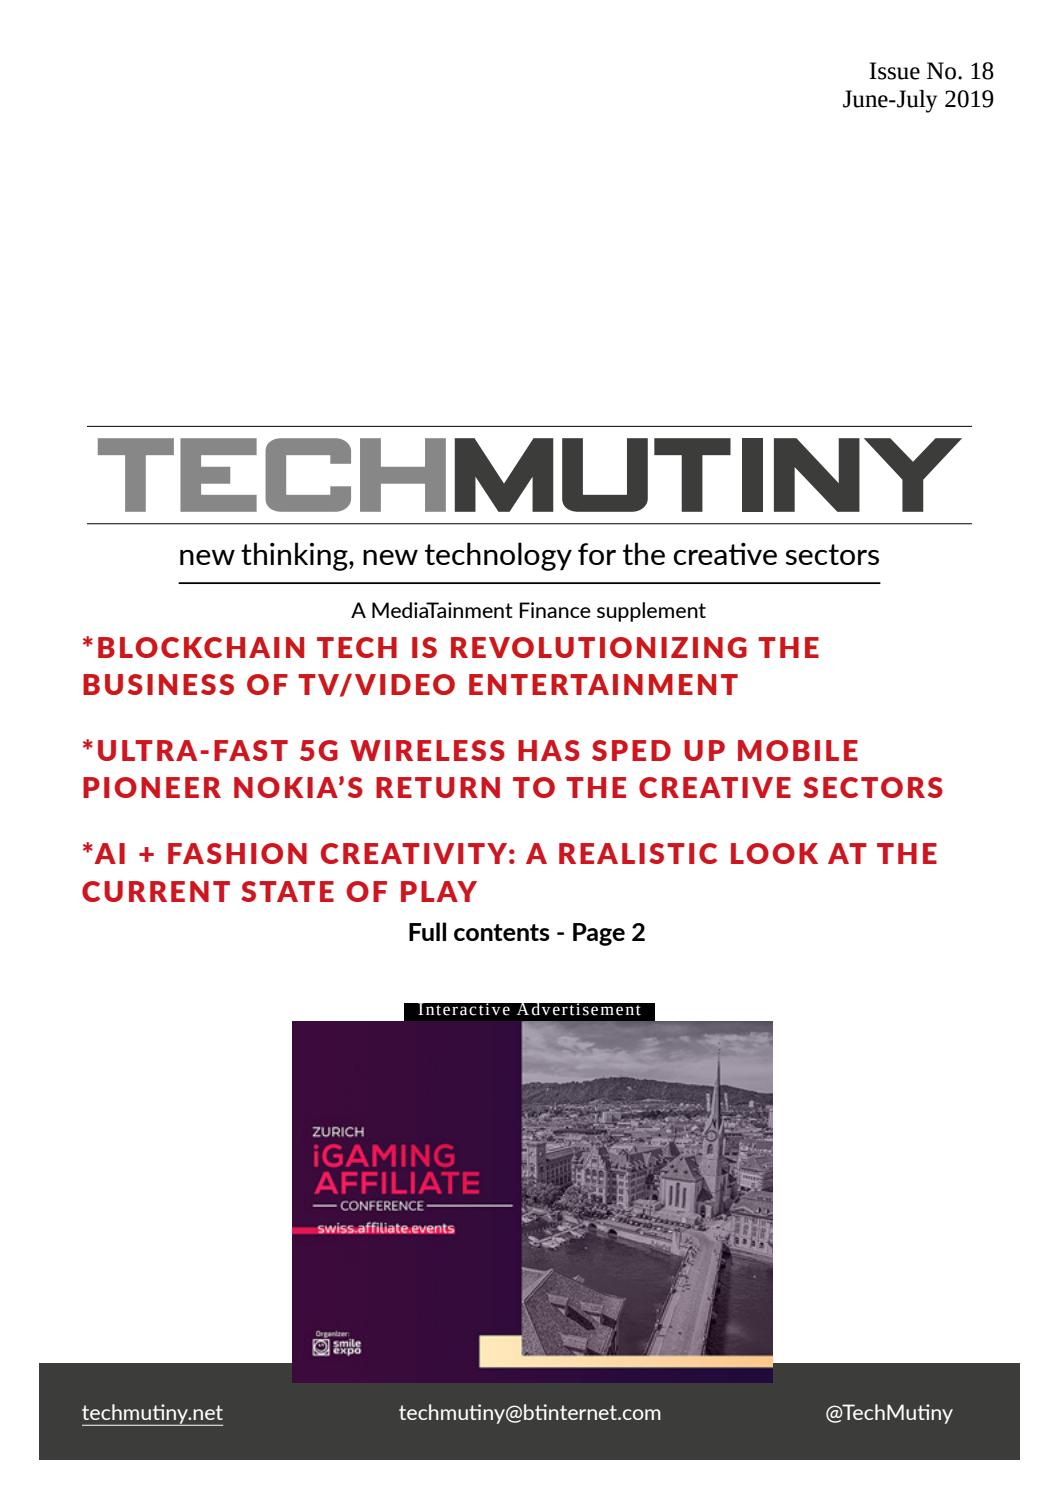 TECHMUTINY ISSUE NO 18 by Juliana K - issuu